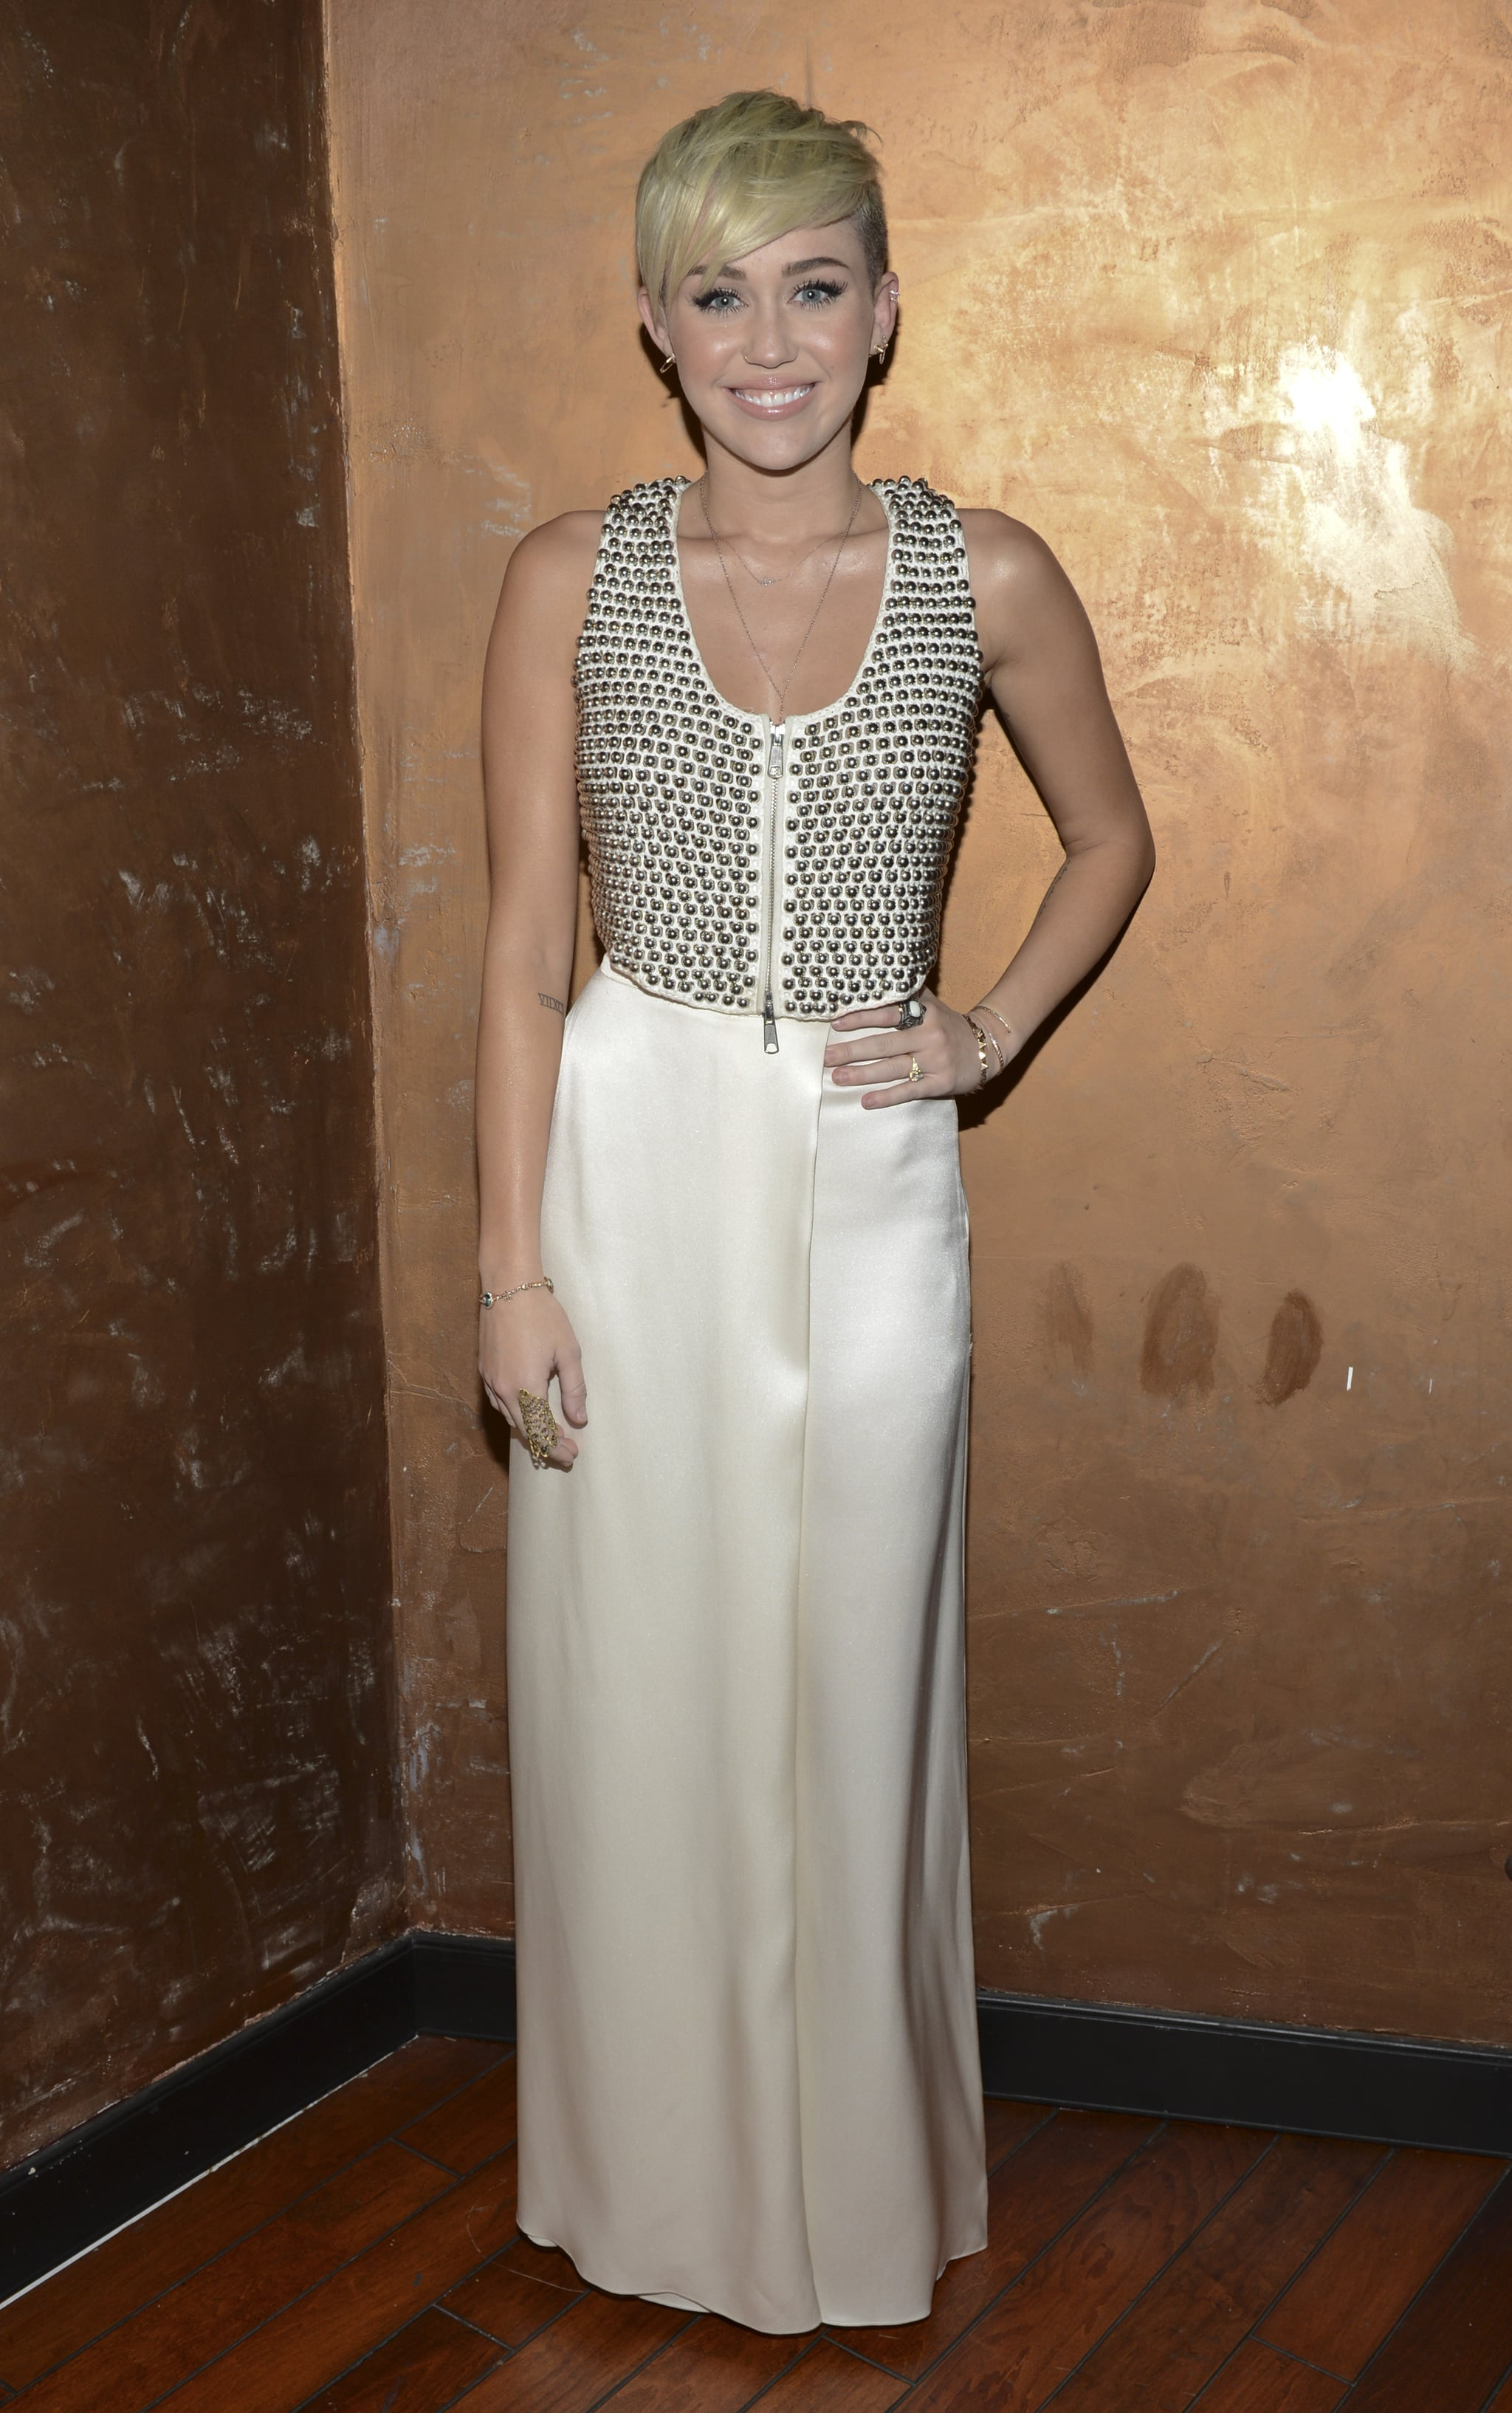 Miley Cyrus stepped out to honor Halston CEO Ben Malka in LA